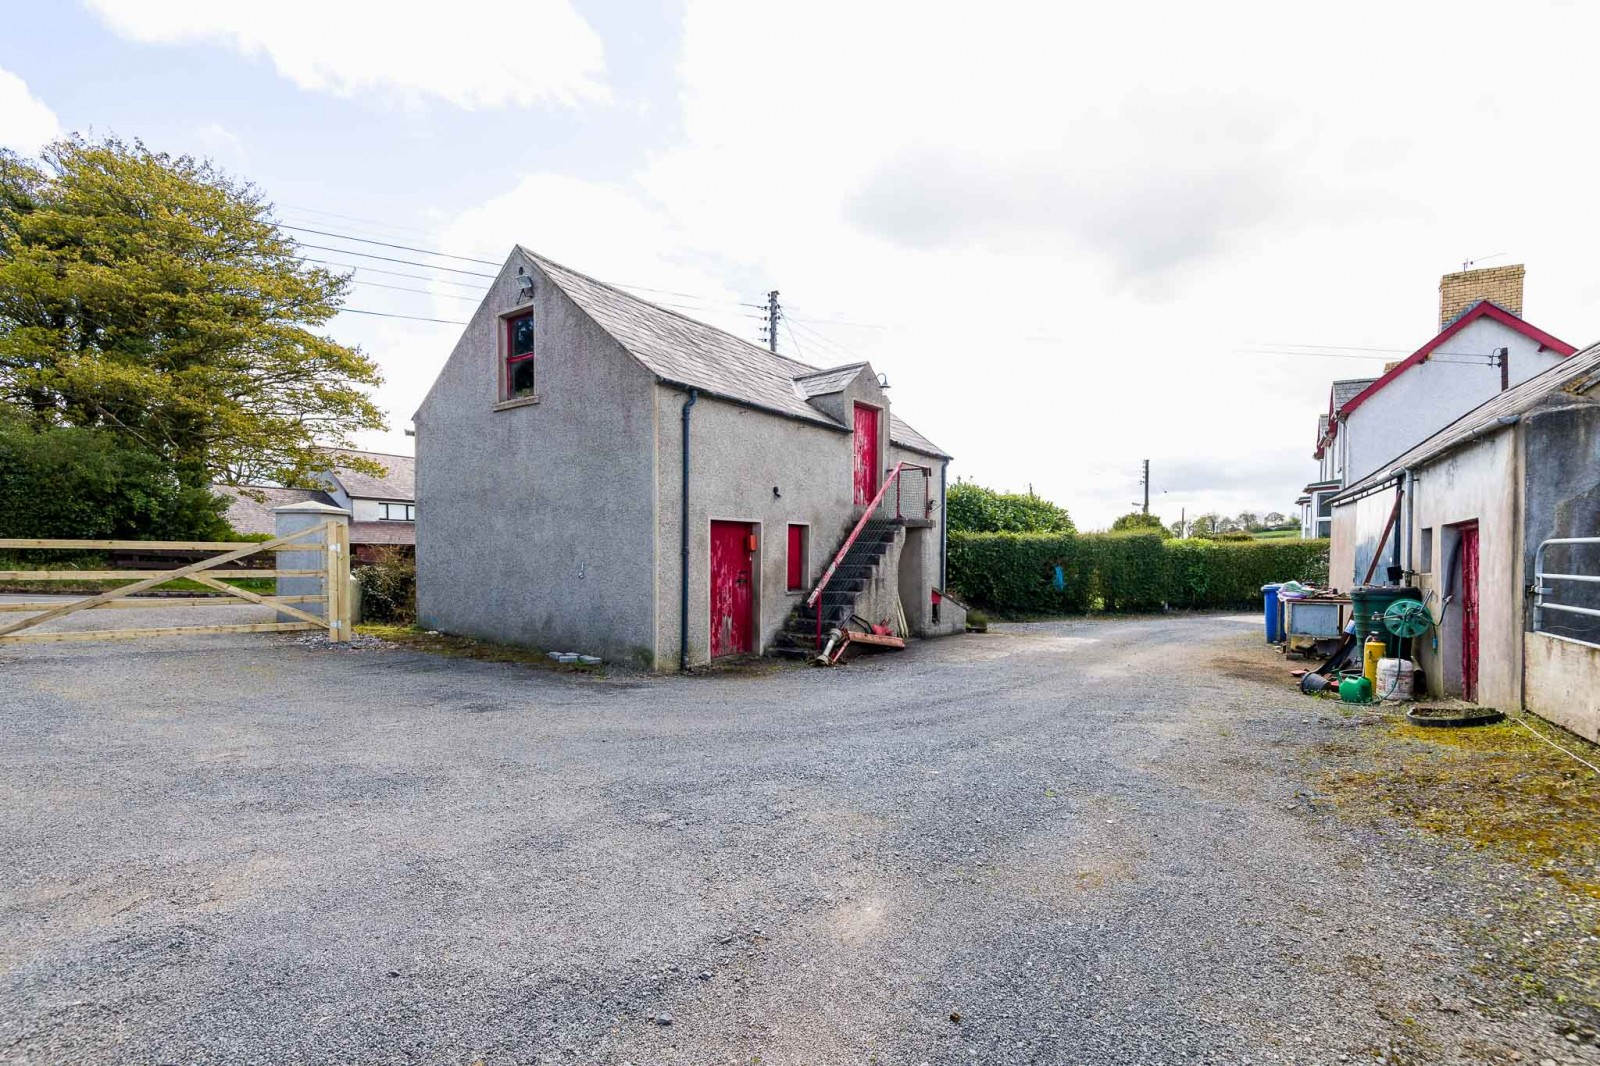 171 Ballycoan Road, Adj. to 173 Ballycoan Road